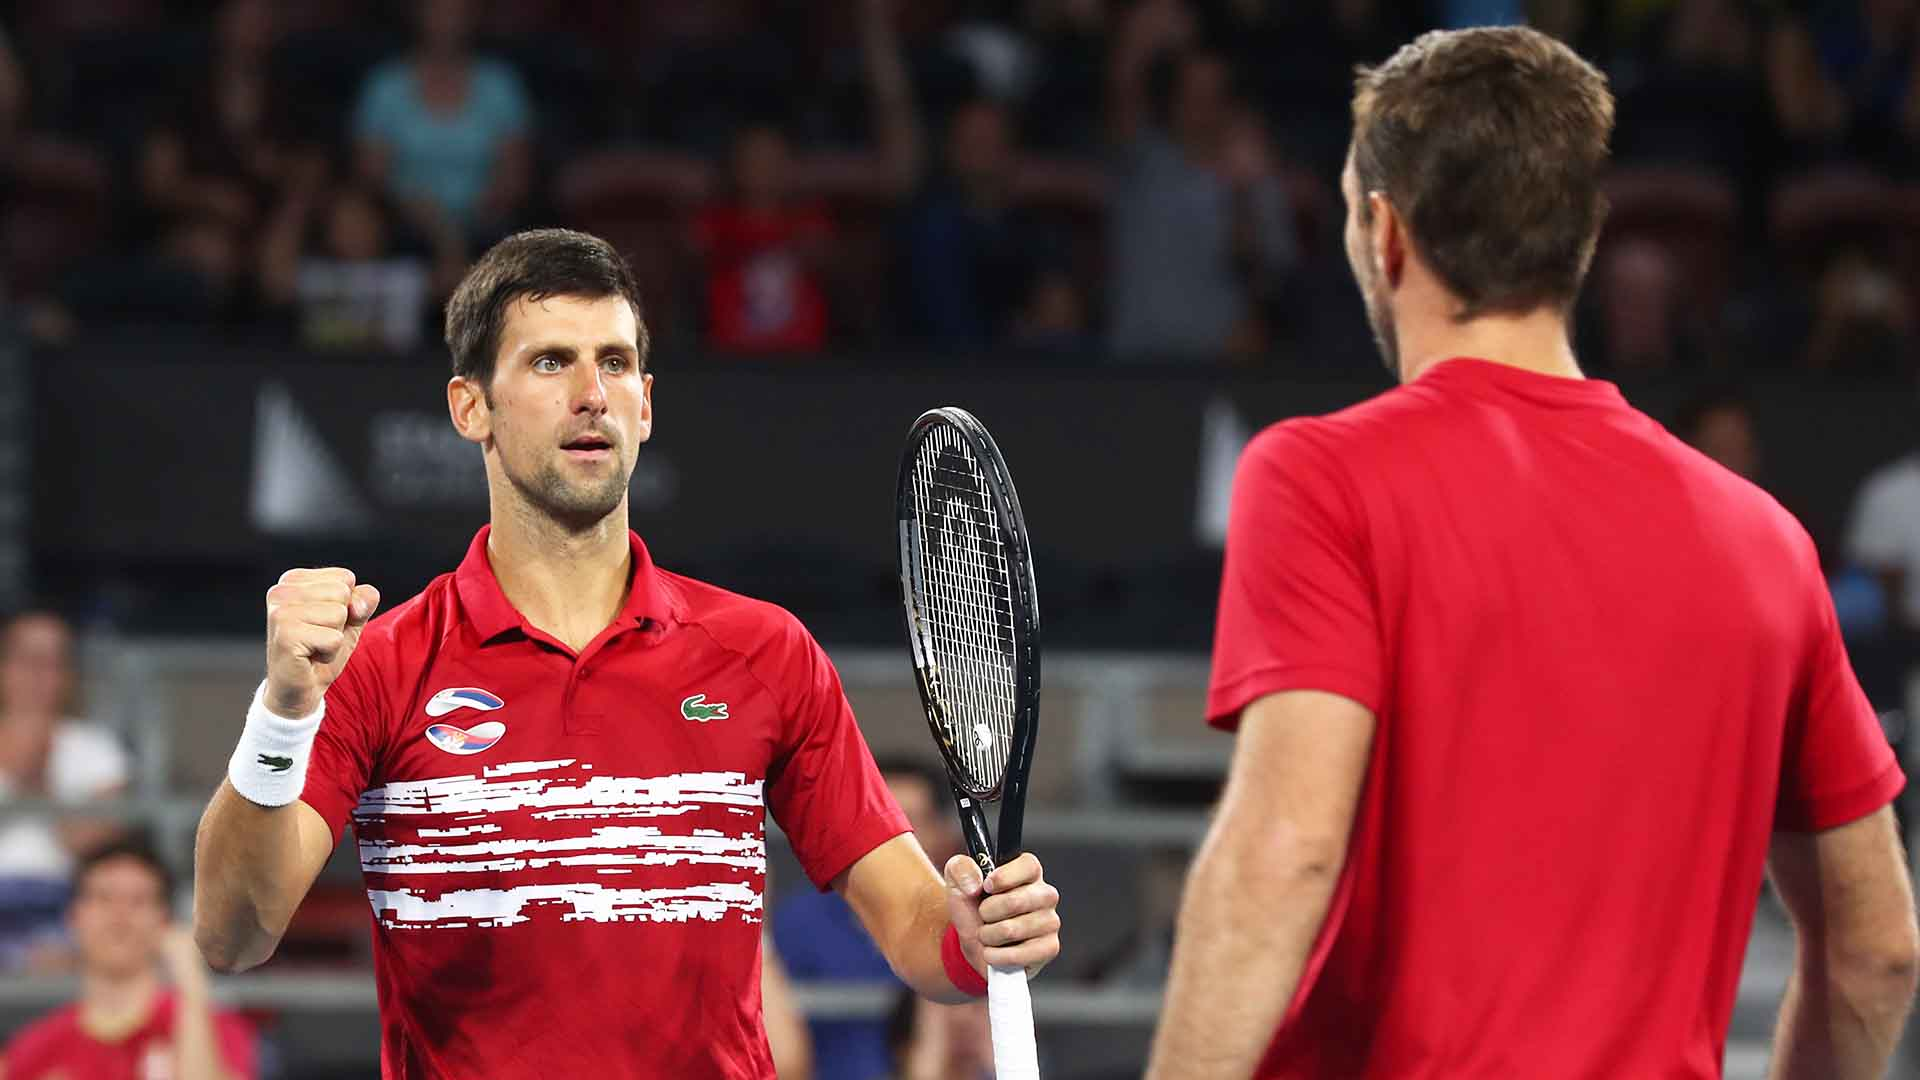 Novak Djokovic and Viktor Troicki beat Nicolas Mahut and Edouard Roger-Vasselin at the ATP Cup.